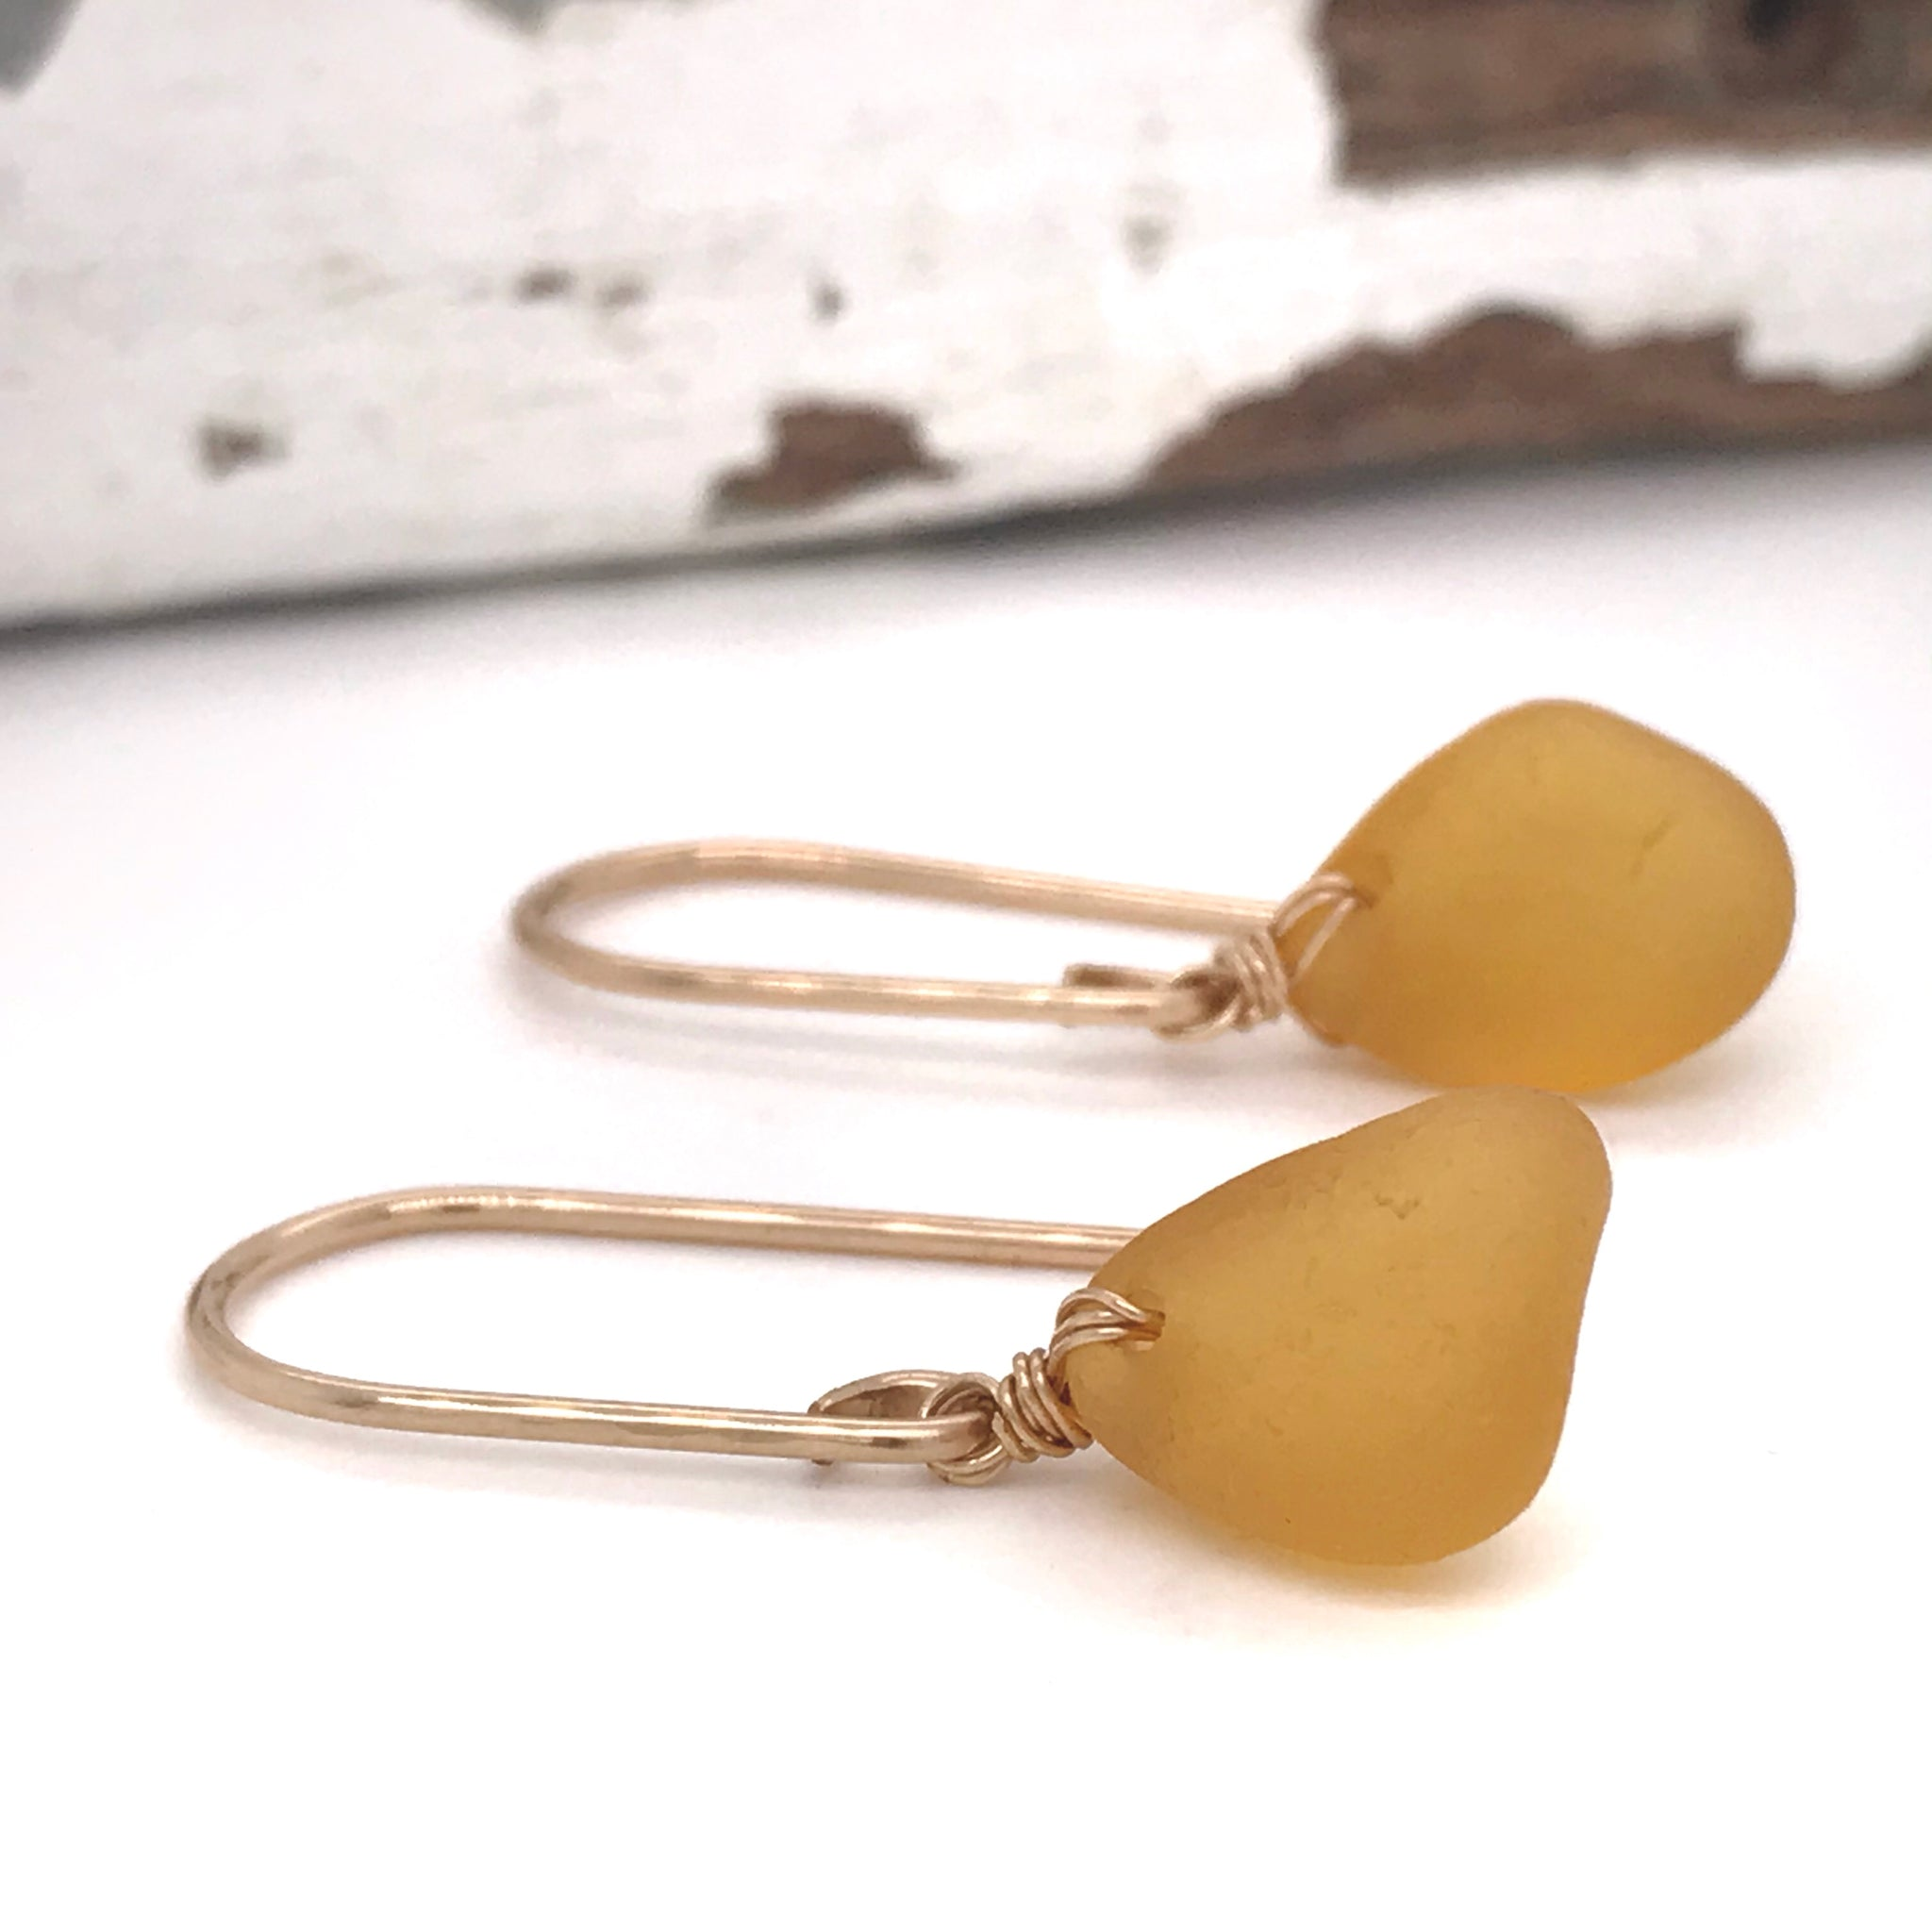 amber earrings rare beach glass on gold drops kriket broadhurst jewellery Christmas gifts